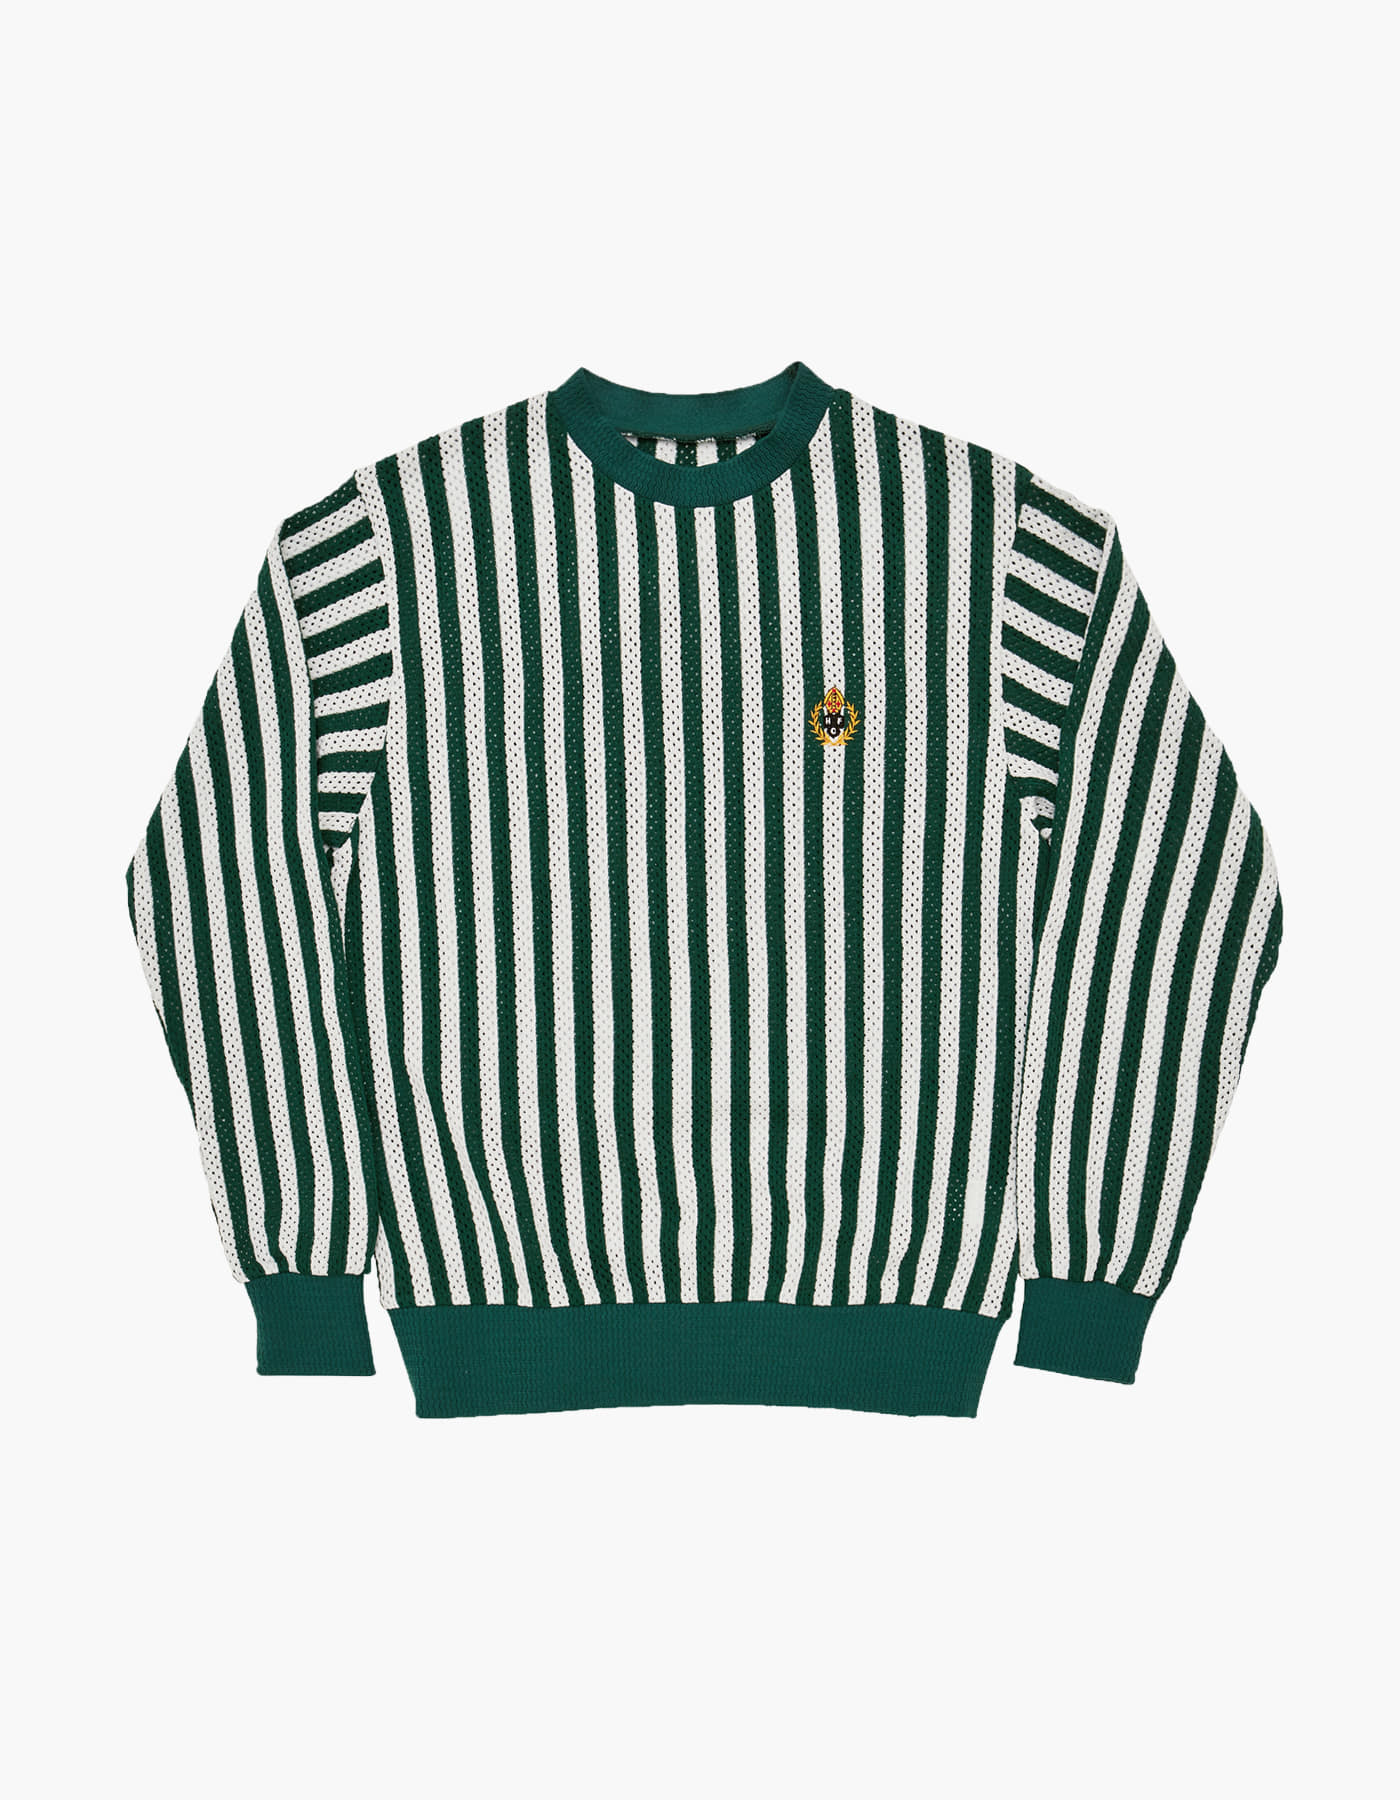 ENGLISH STRIPED MESH CREWNECK / WHITE-GREEN